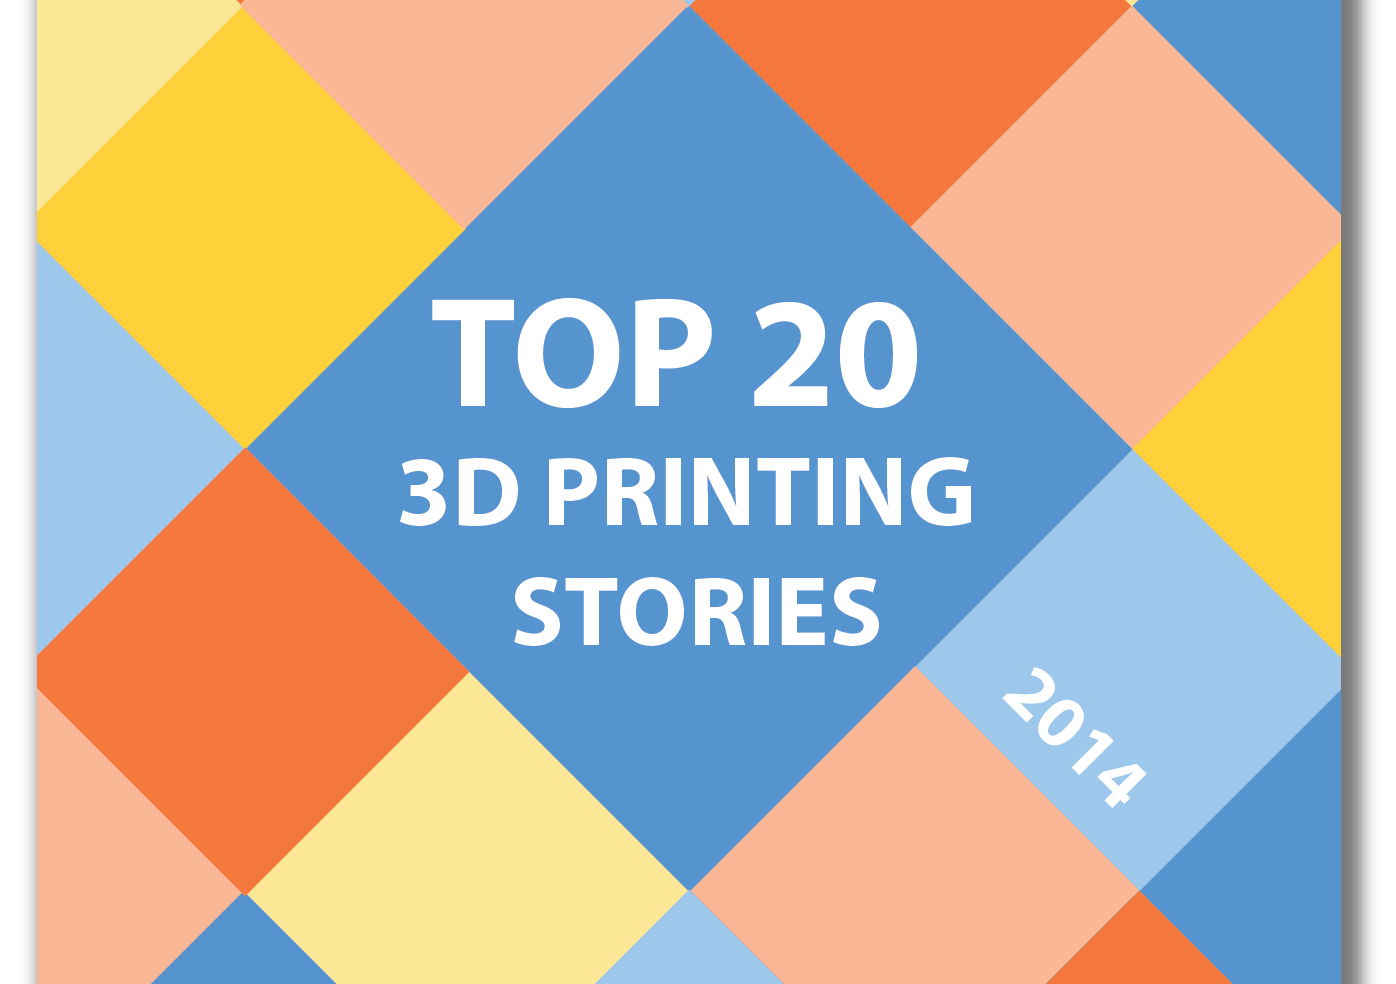 Die Top 20 3D-Druck Stories in 2014